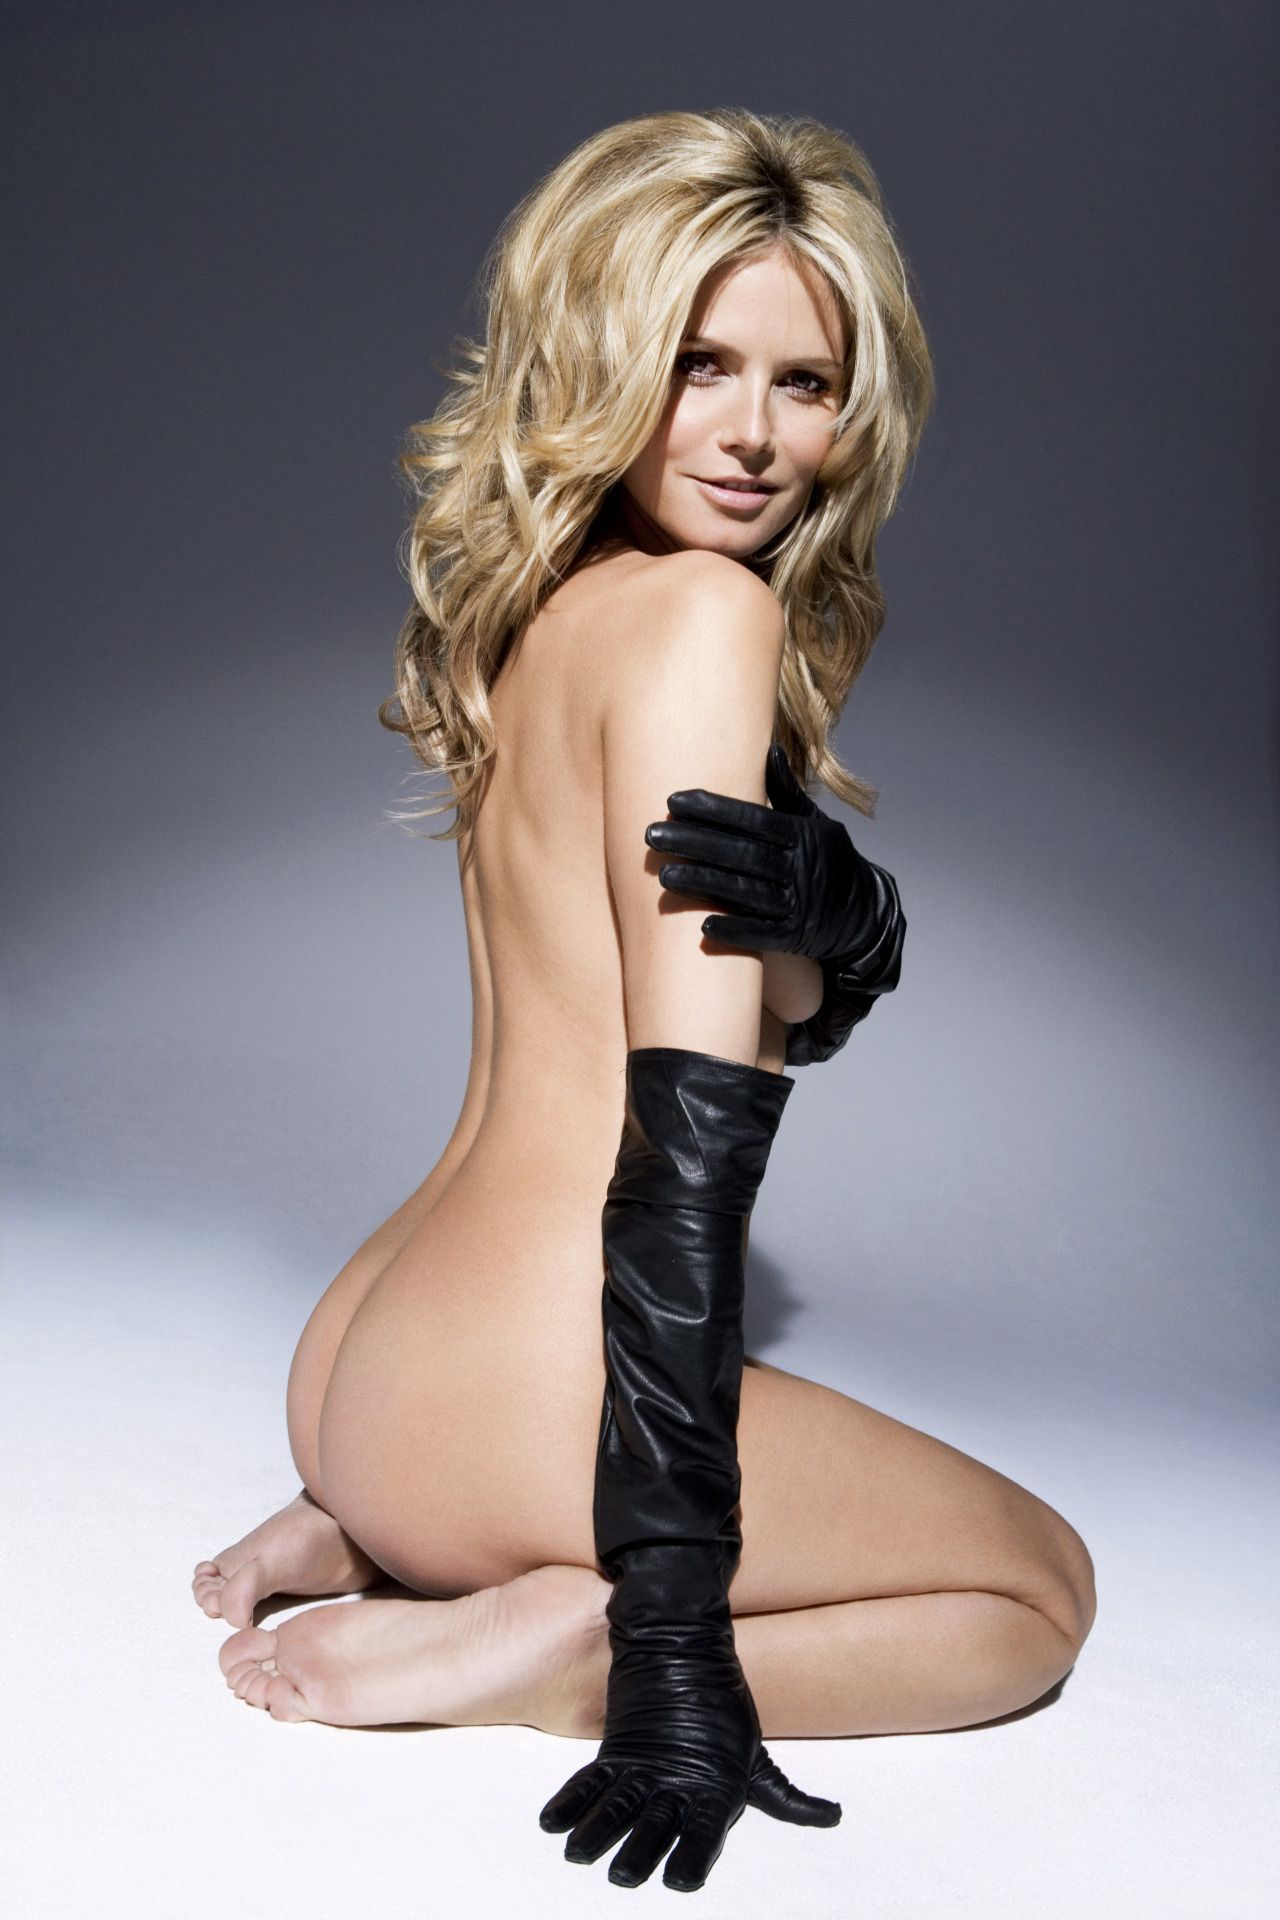 Free nude pictures of heidi klum